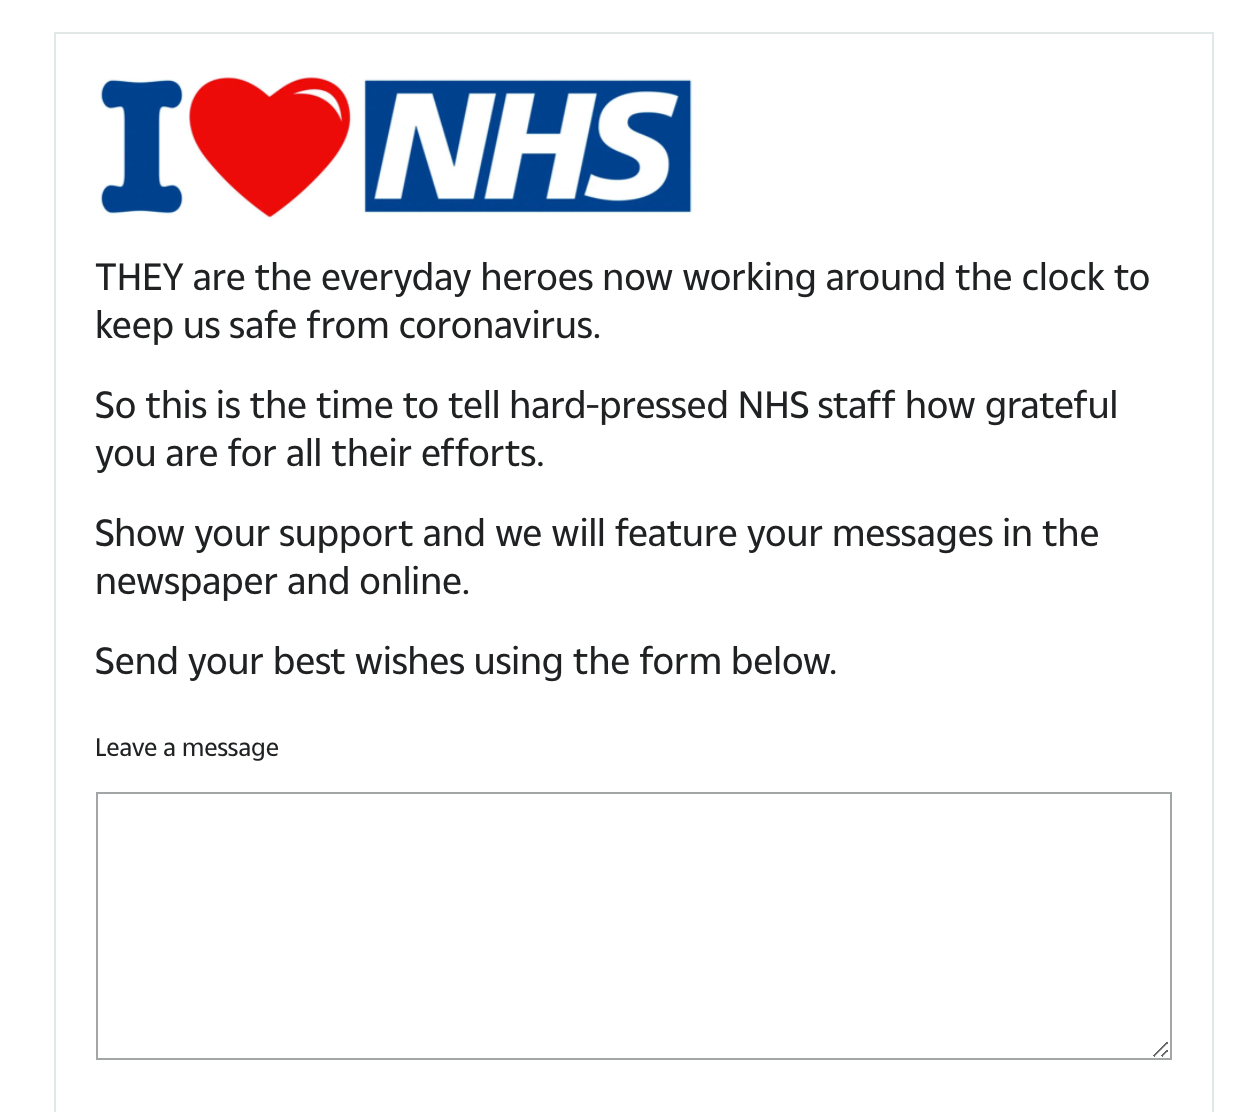 I Heart NHS Submission Form